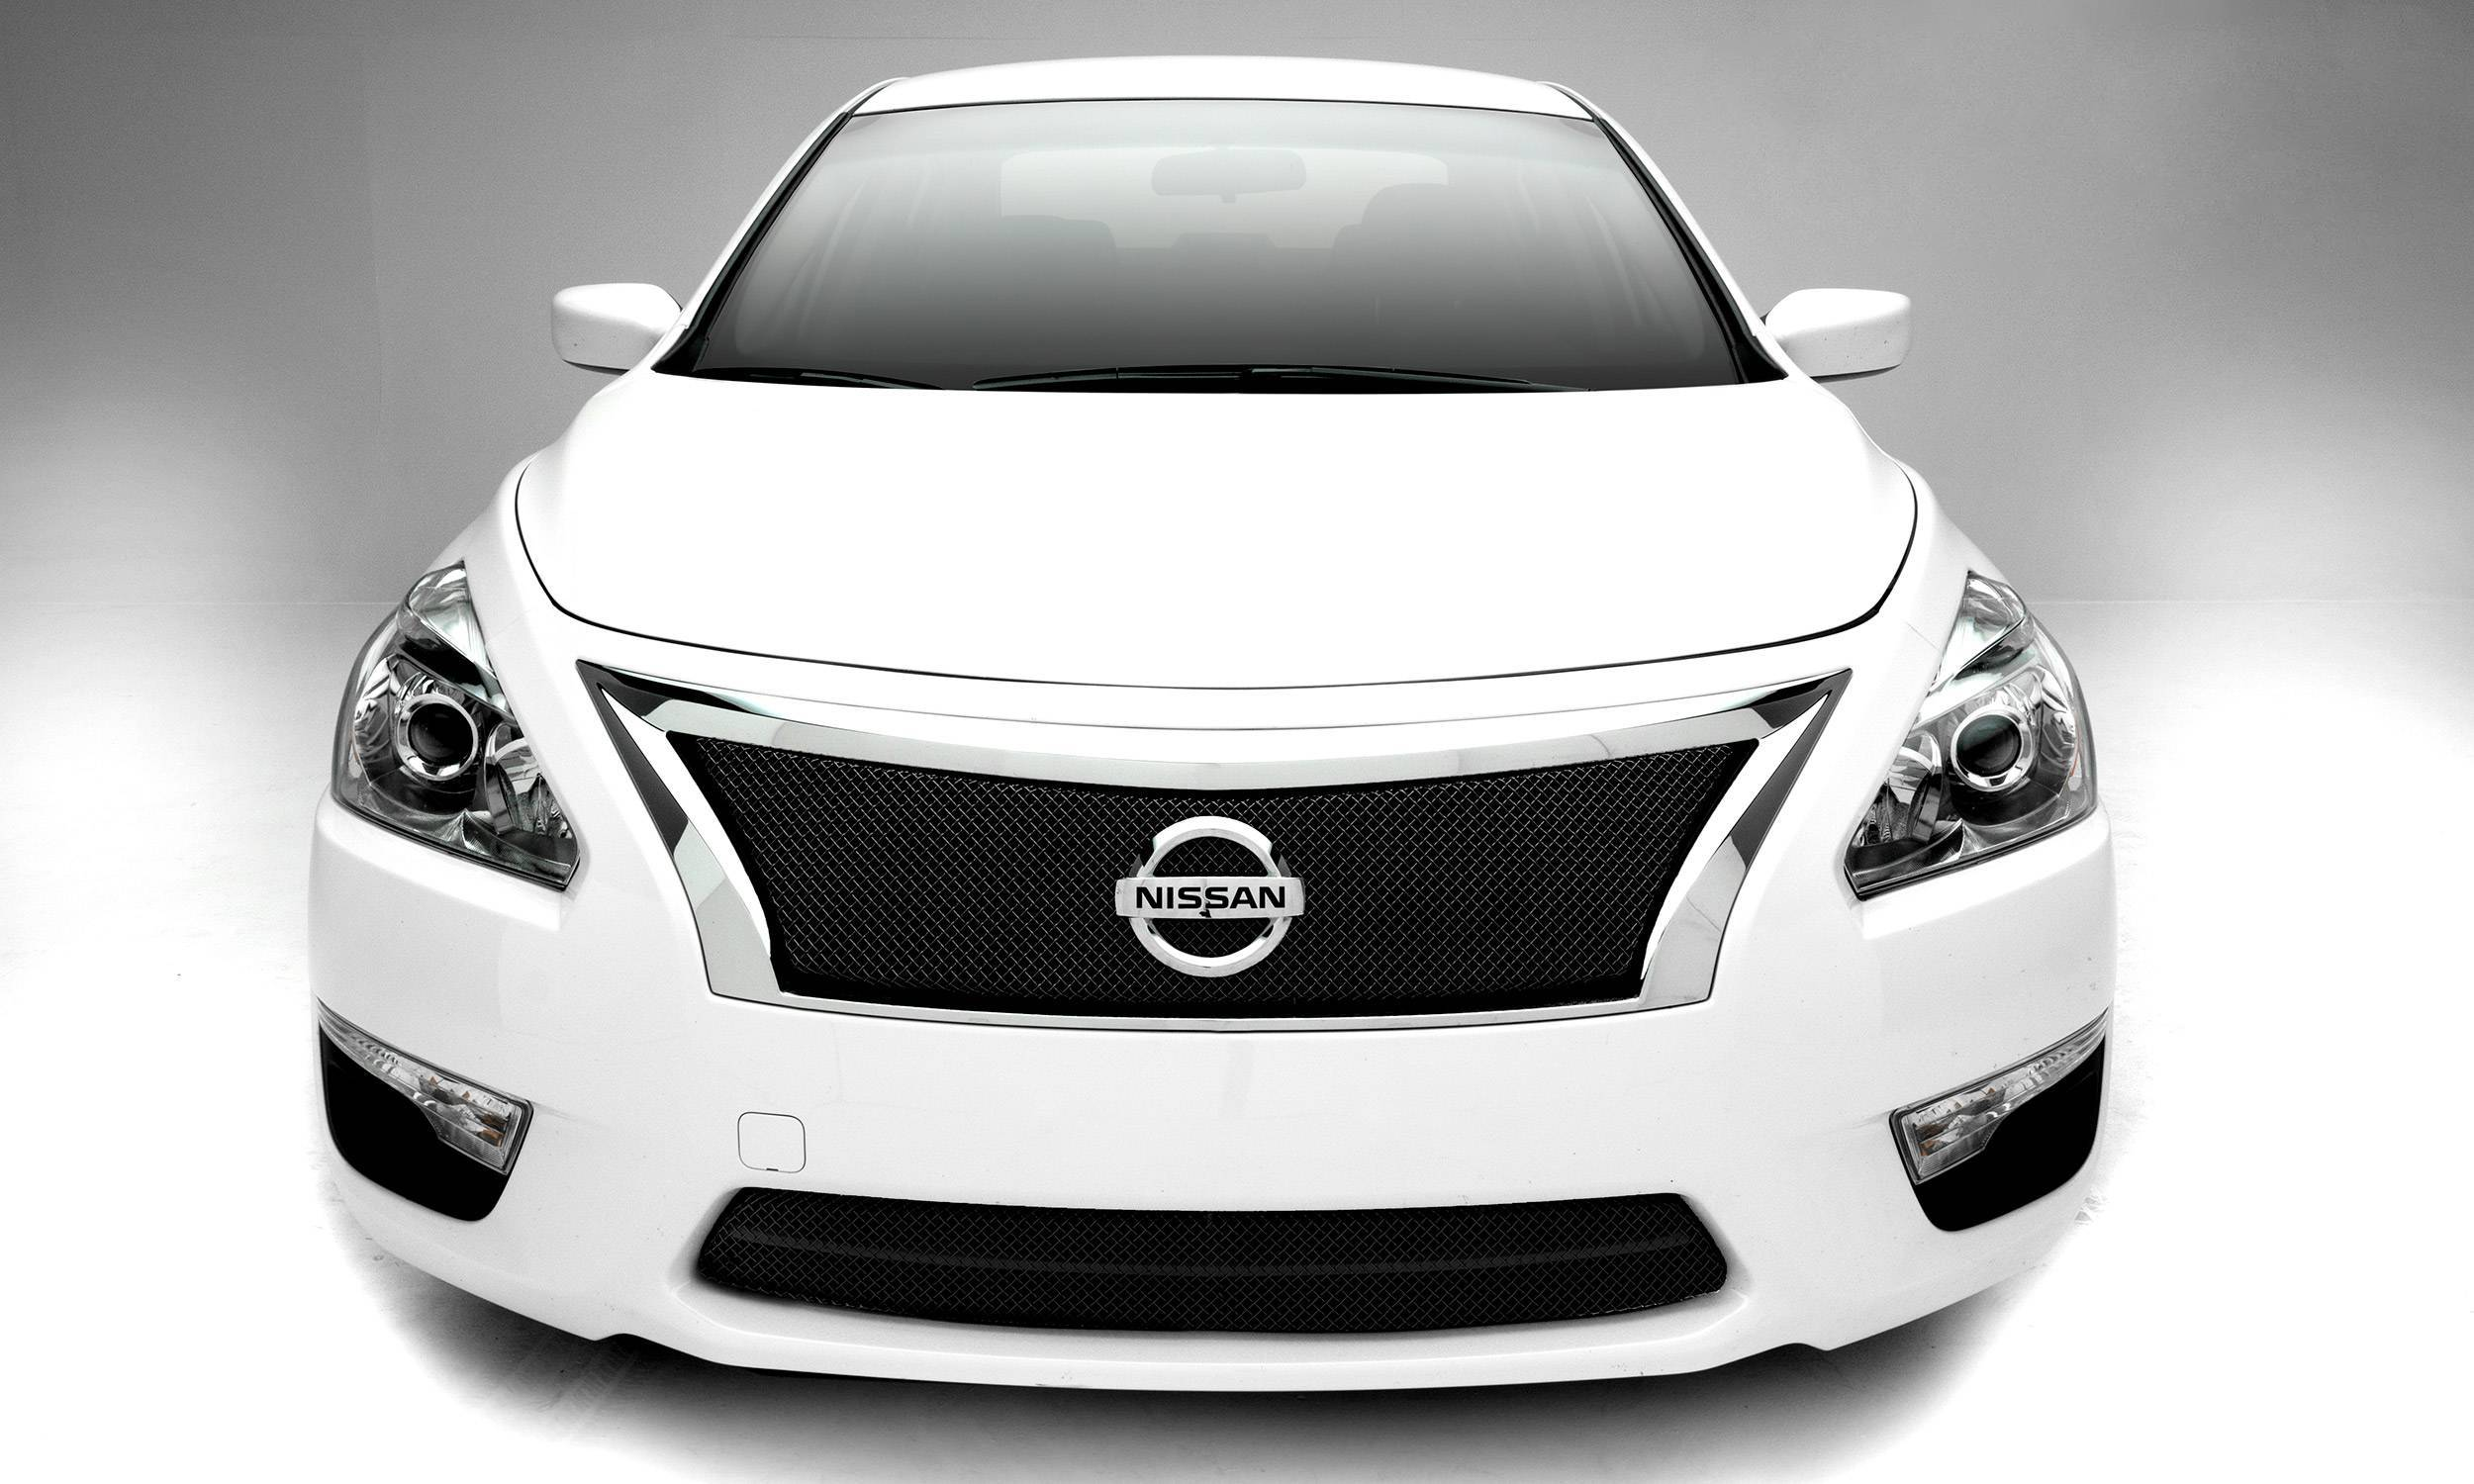 Nissan Altima Black Sports Series Main Grille